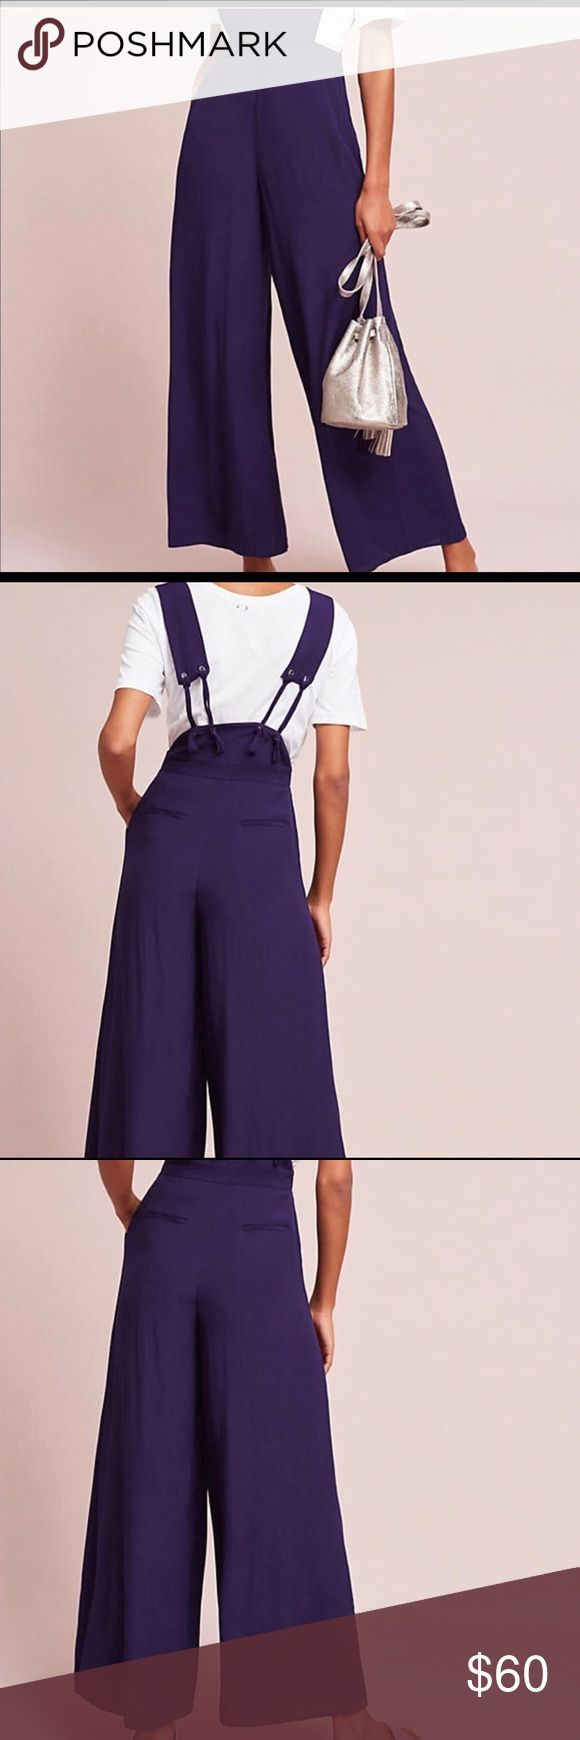 MAEVE NWOT Purple Jumpsuit MAEVE (NWOT) brand purple contemporary apron wide-leg jumpsuit. Size 10. Never worn, perfect condition! An all around season investment 🙌🏽 Perfect for spring/summer ☀️ or can be worn in fall/winter layered with a turtleneck and blazer 🍂 Open to offers so make me one 😜🙌🏽 maeve Other